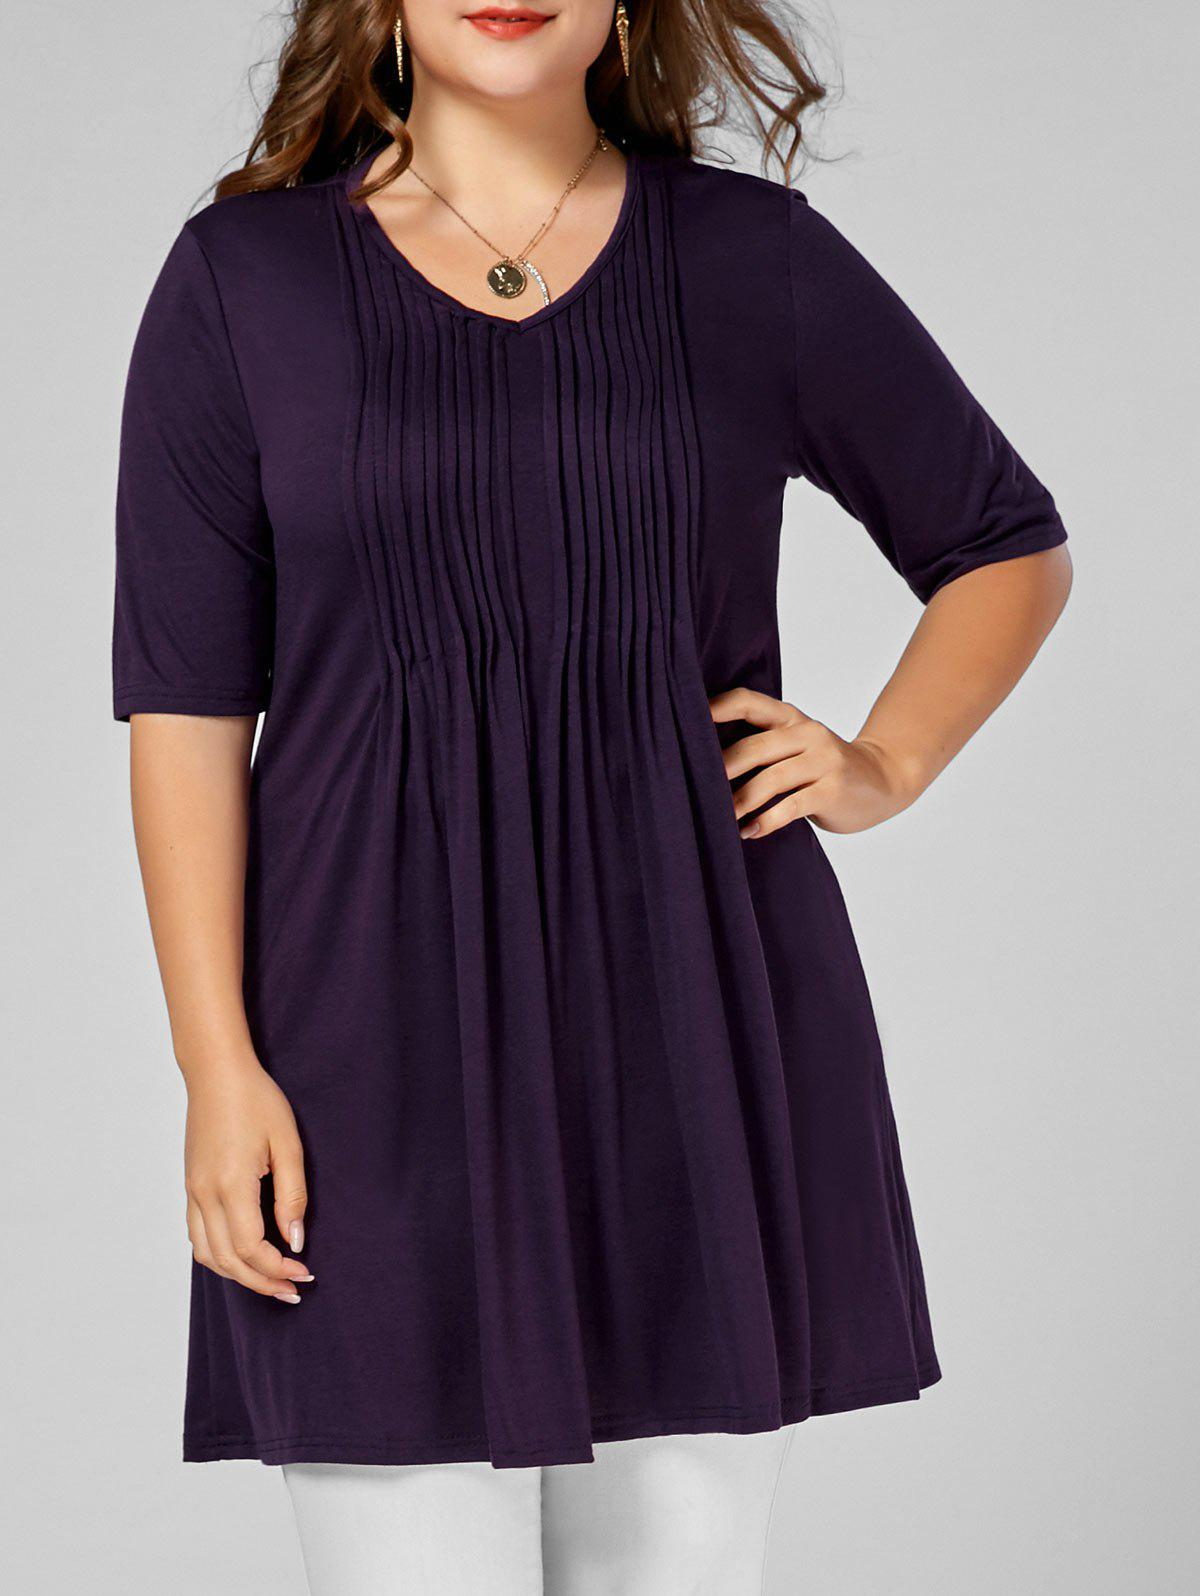 V Neck Plus Size Tunic Tee - DEEP PURPLE 4XL